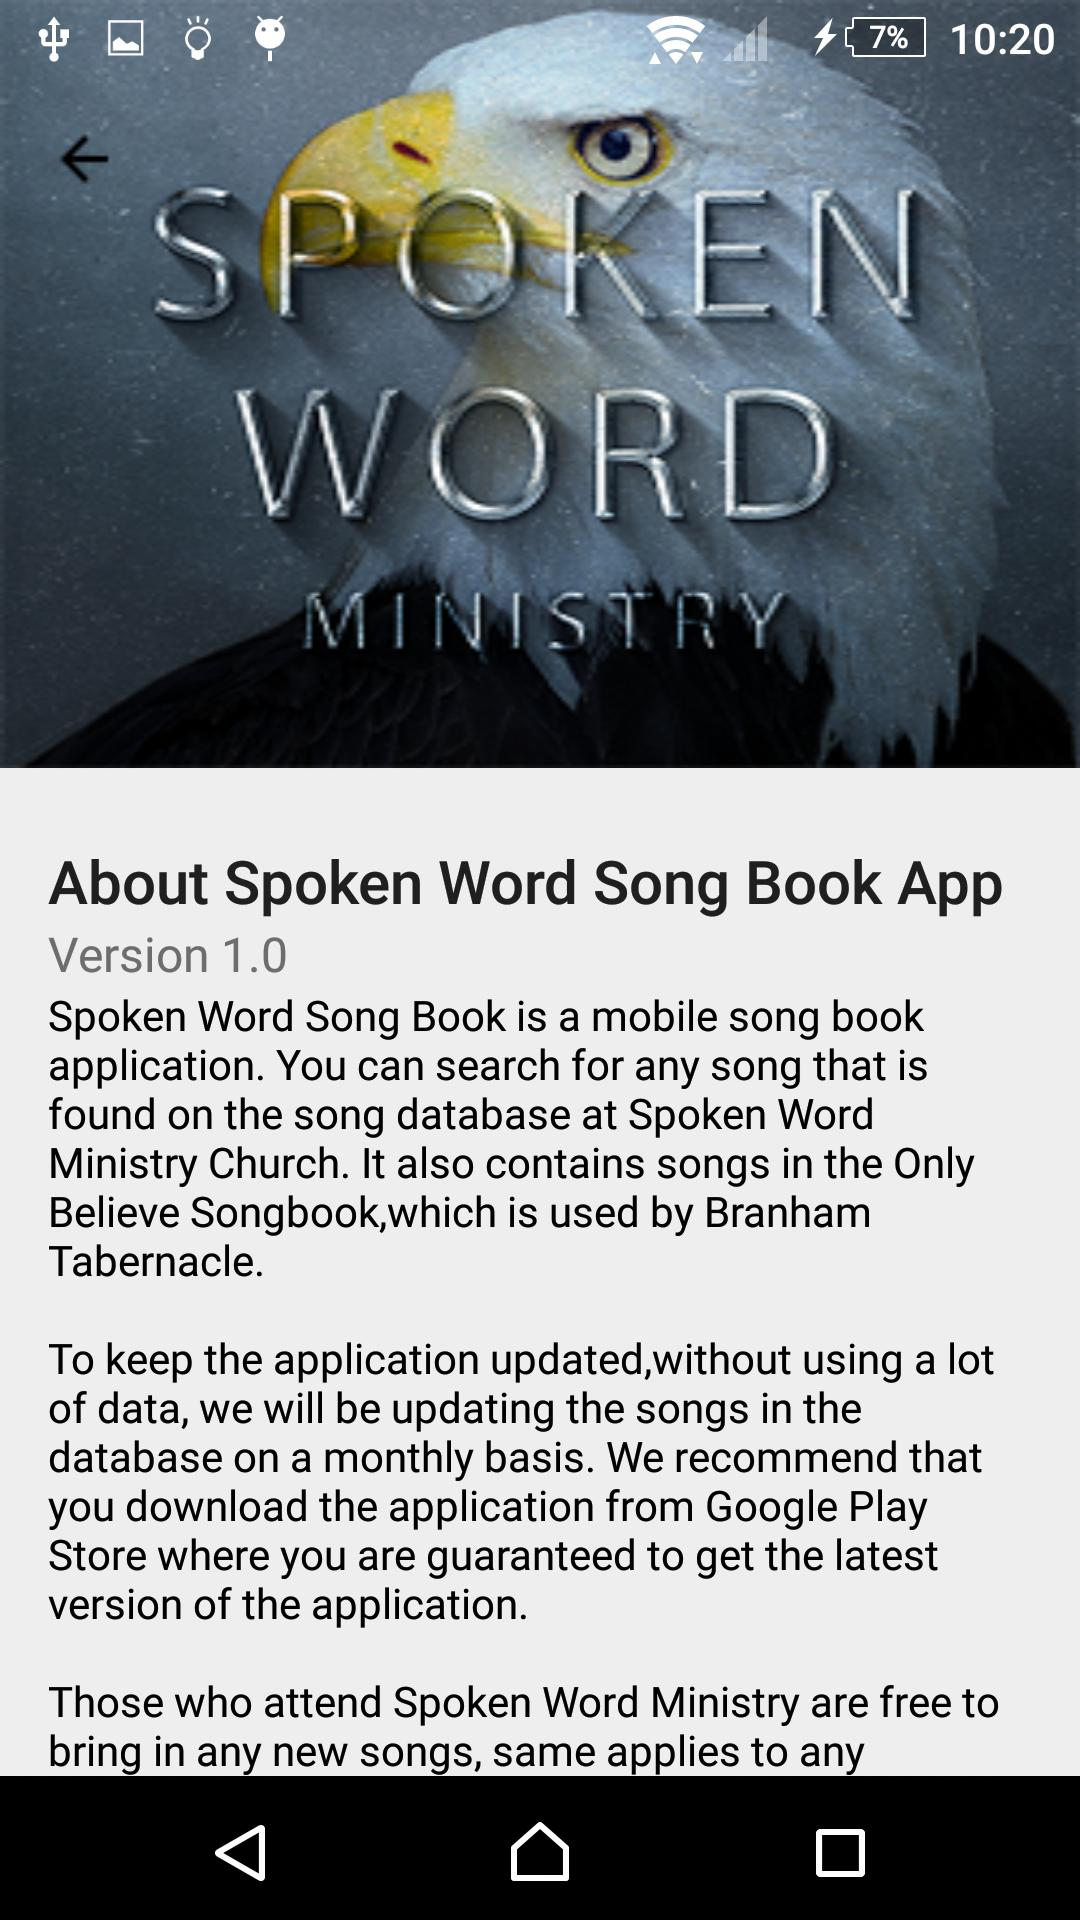 Spoken Word Ministry Song Book for Android - APK Download